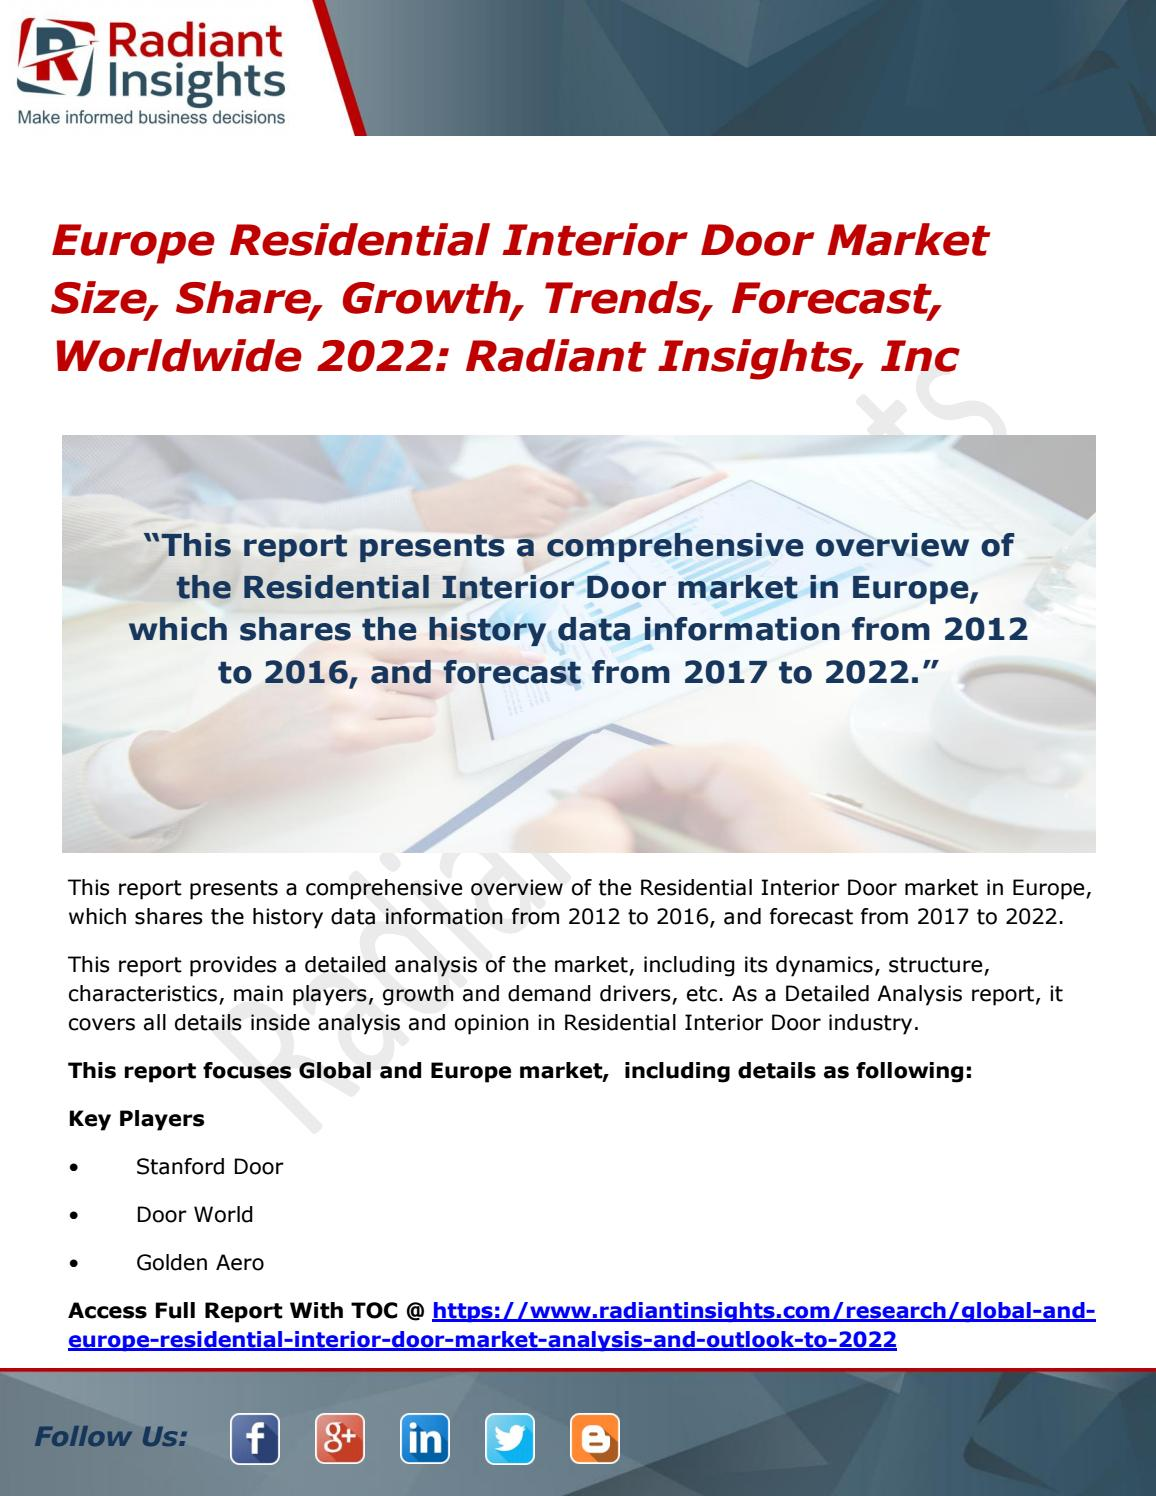 Europe Residential Interior Door Market